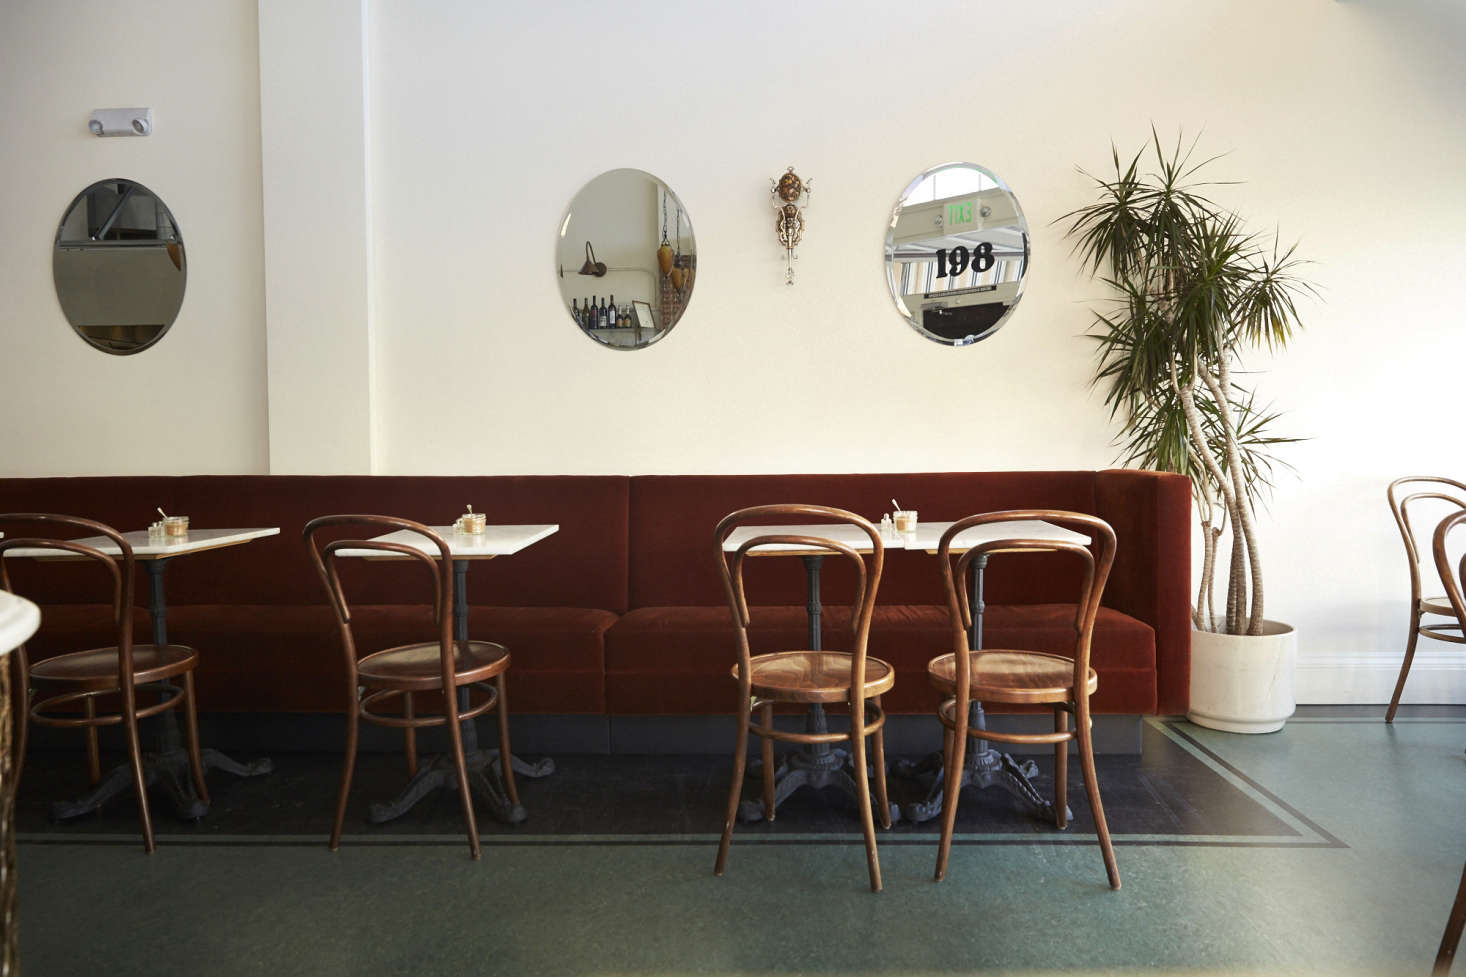 Deep green linoleum looks chic, not tacky, at Twentieth Century Cafe: Old Vienna Comes to San Francisco. Photograph by Laurie Frankel.